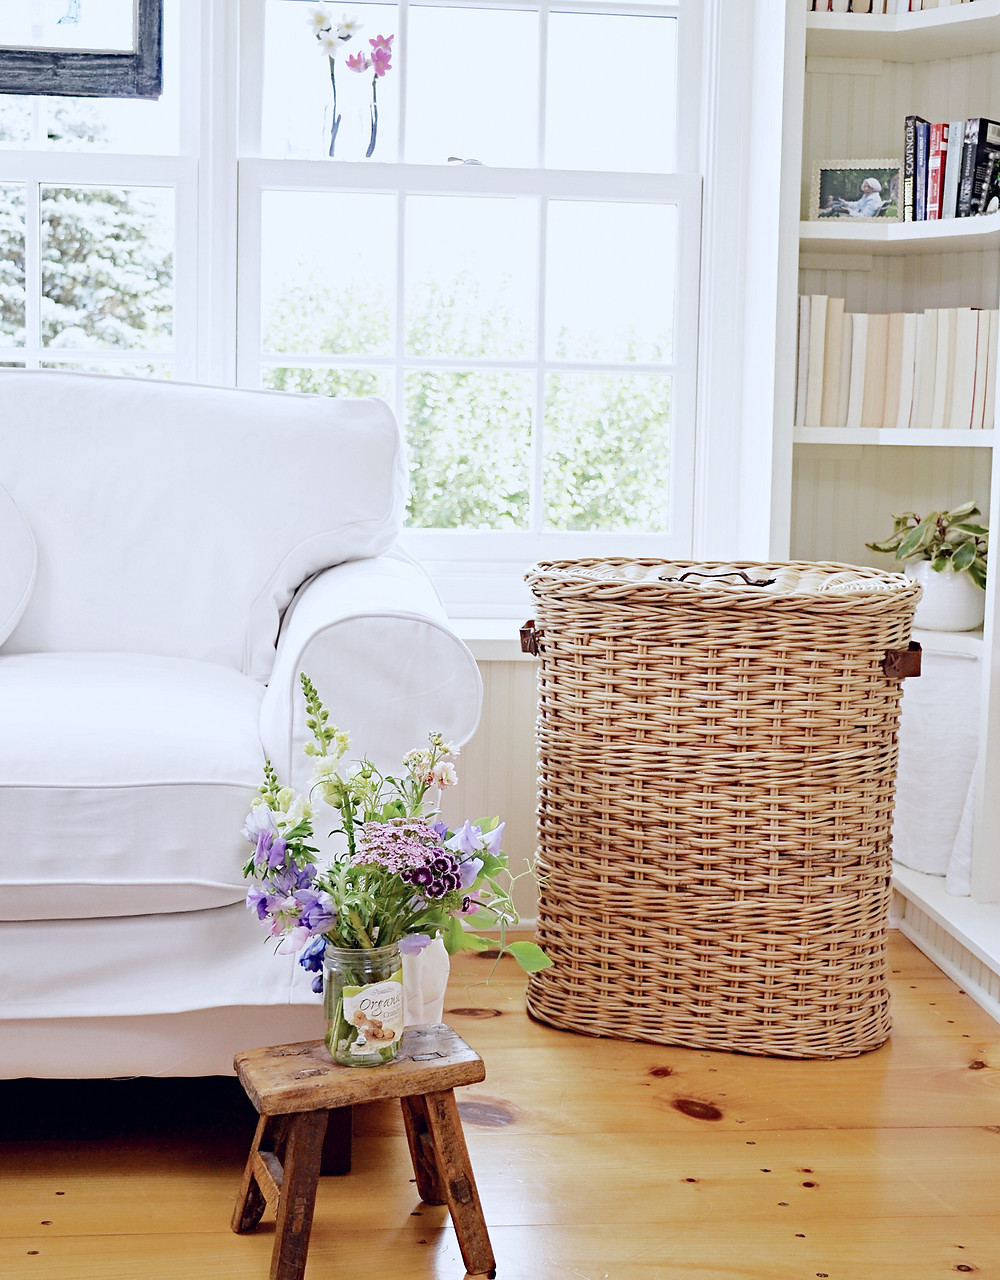 Bookshelves, baskets, window, sunroom.